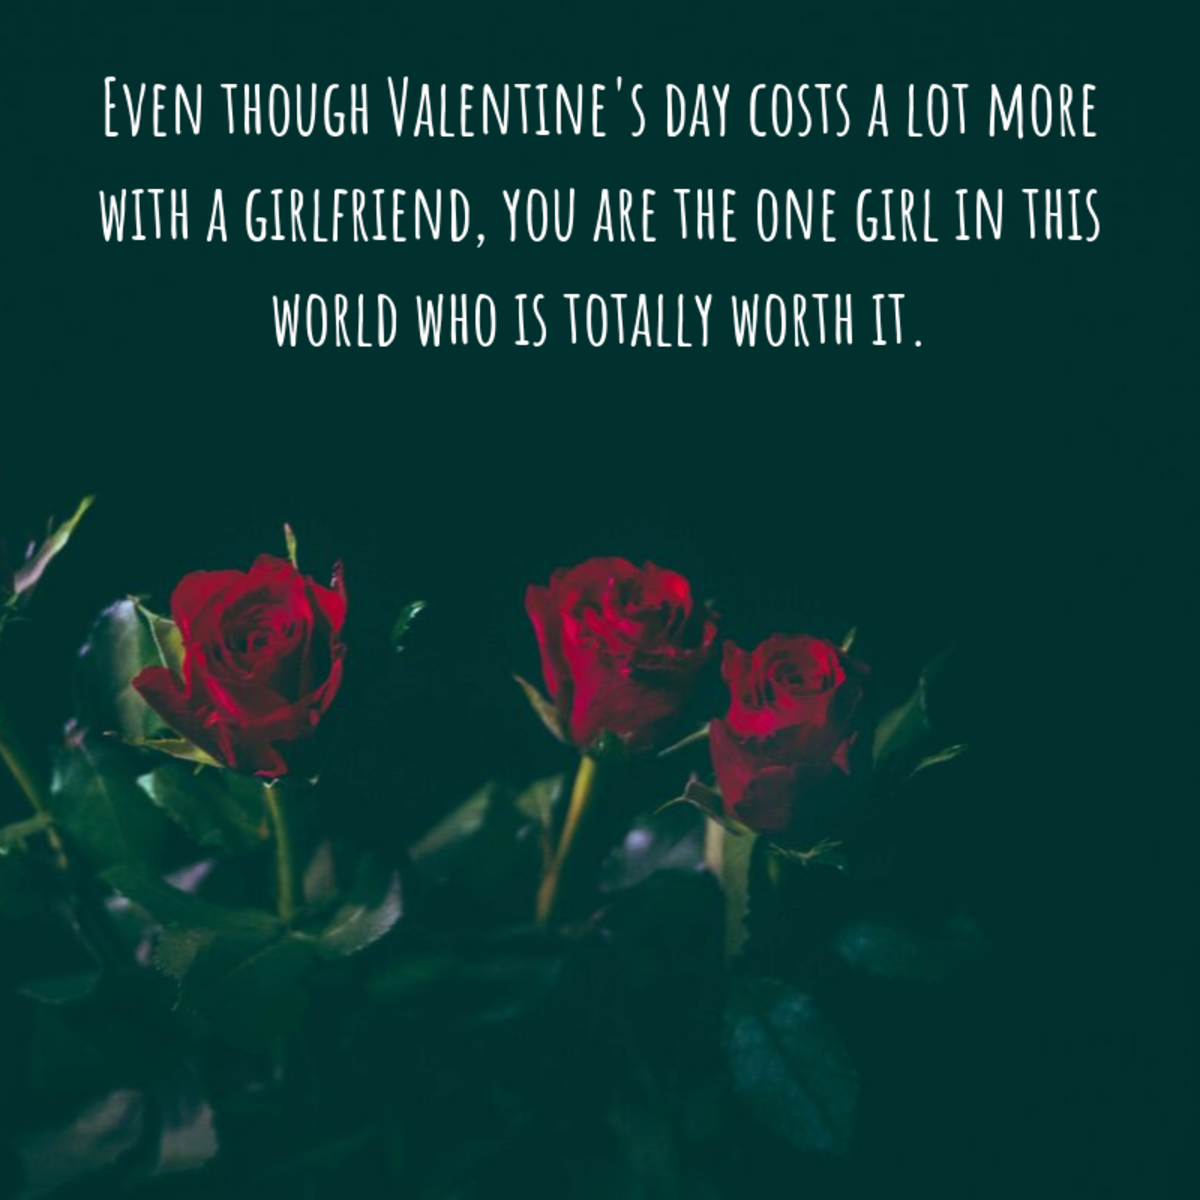 Whatever you write in your girlfriend's Valentine's card, be sure to add a personal element to make it unique and memorable.